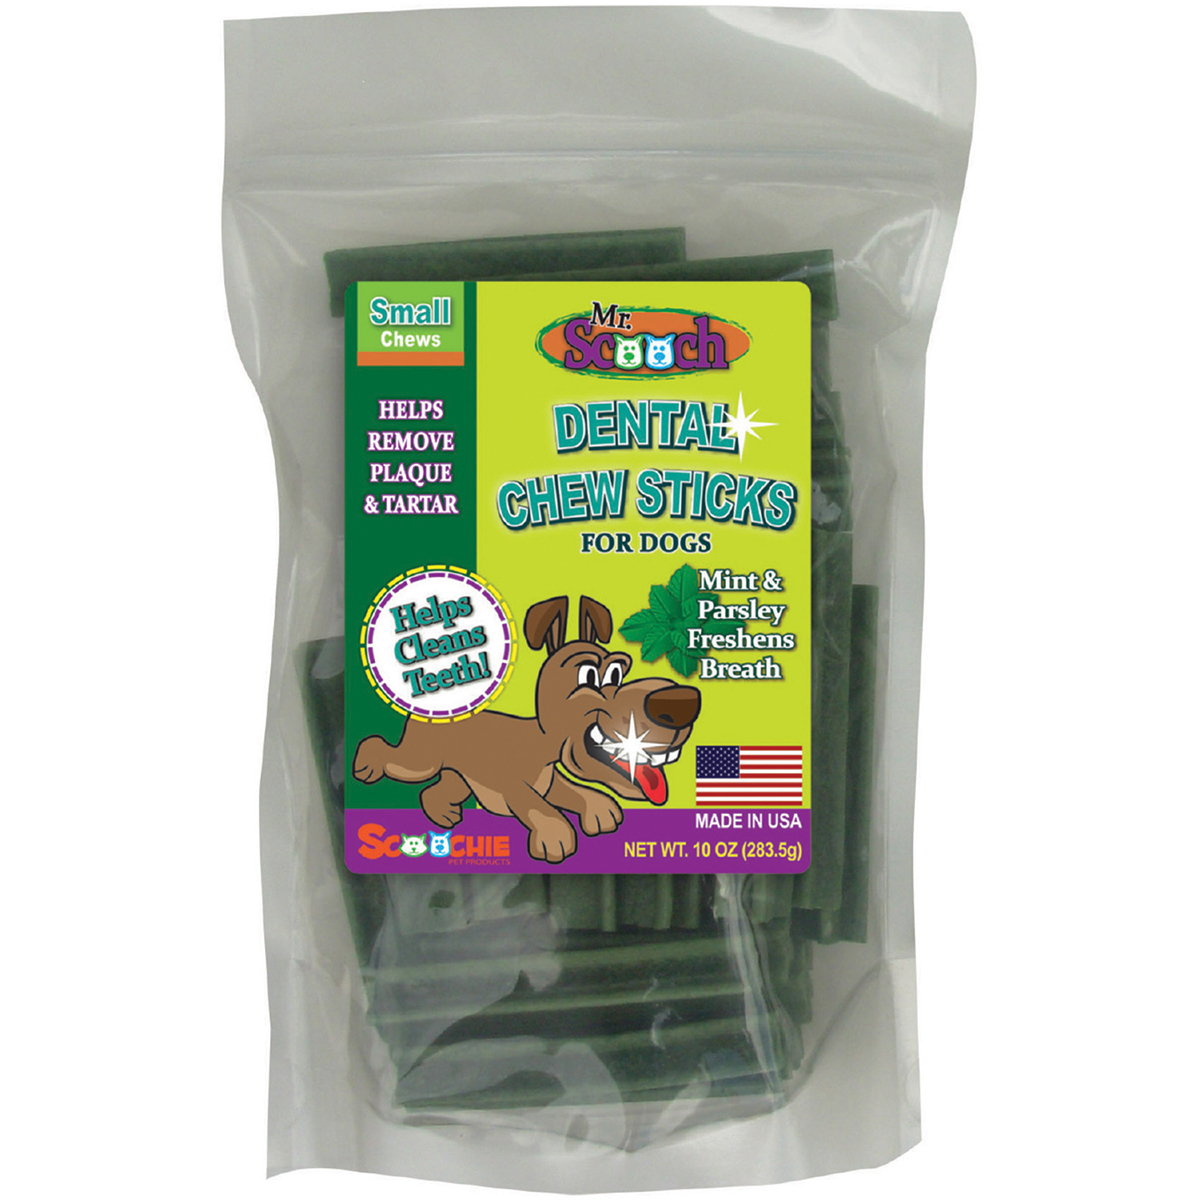 Mr. Scooch Dental Chews 10oz-Mint Small